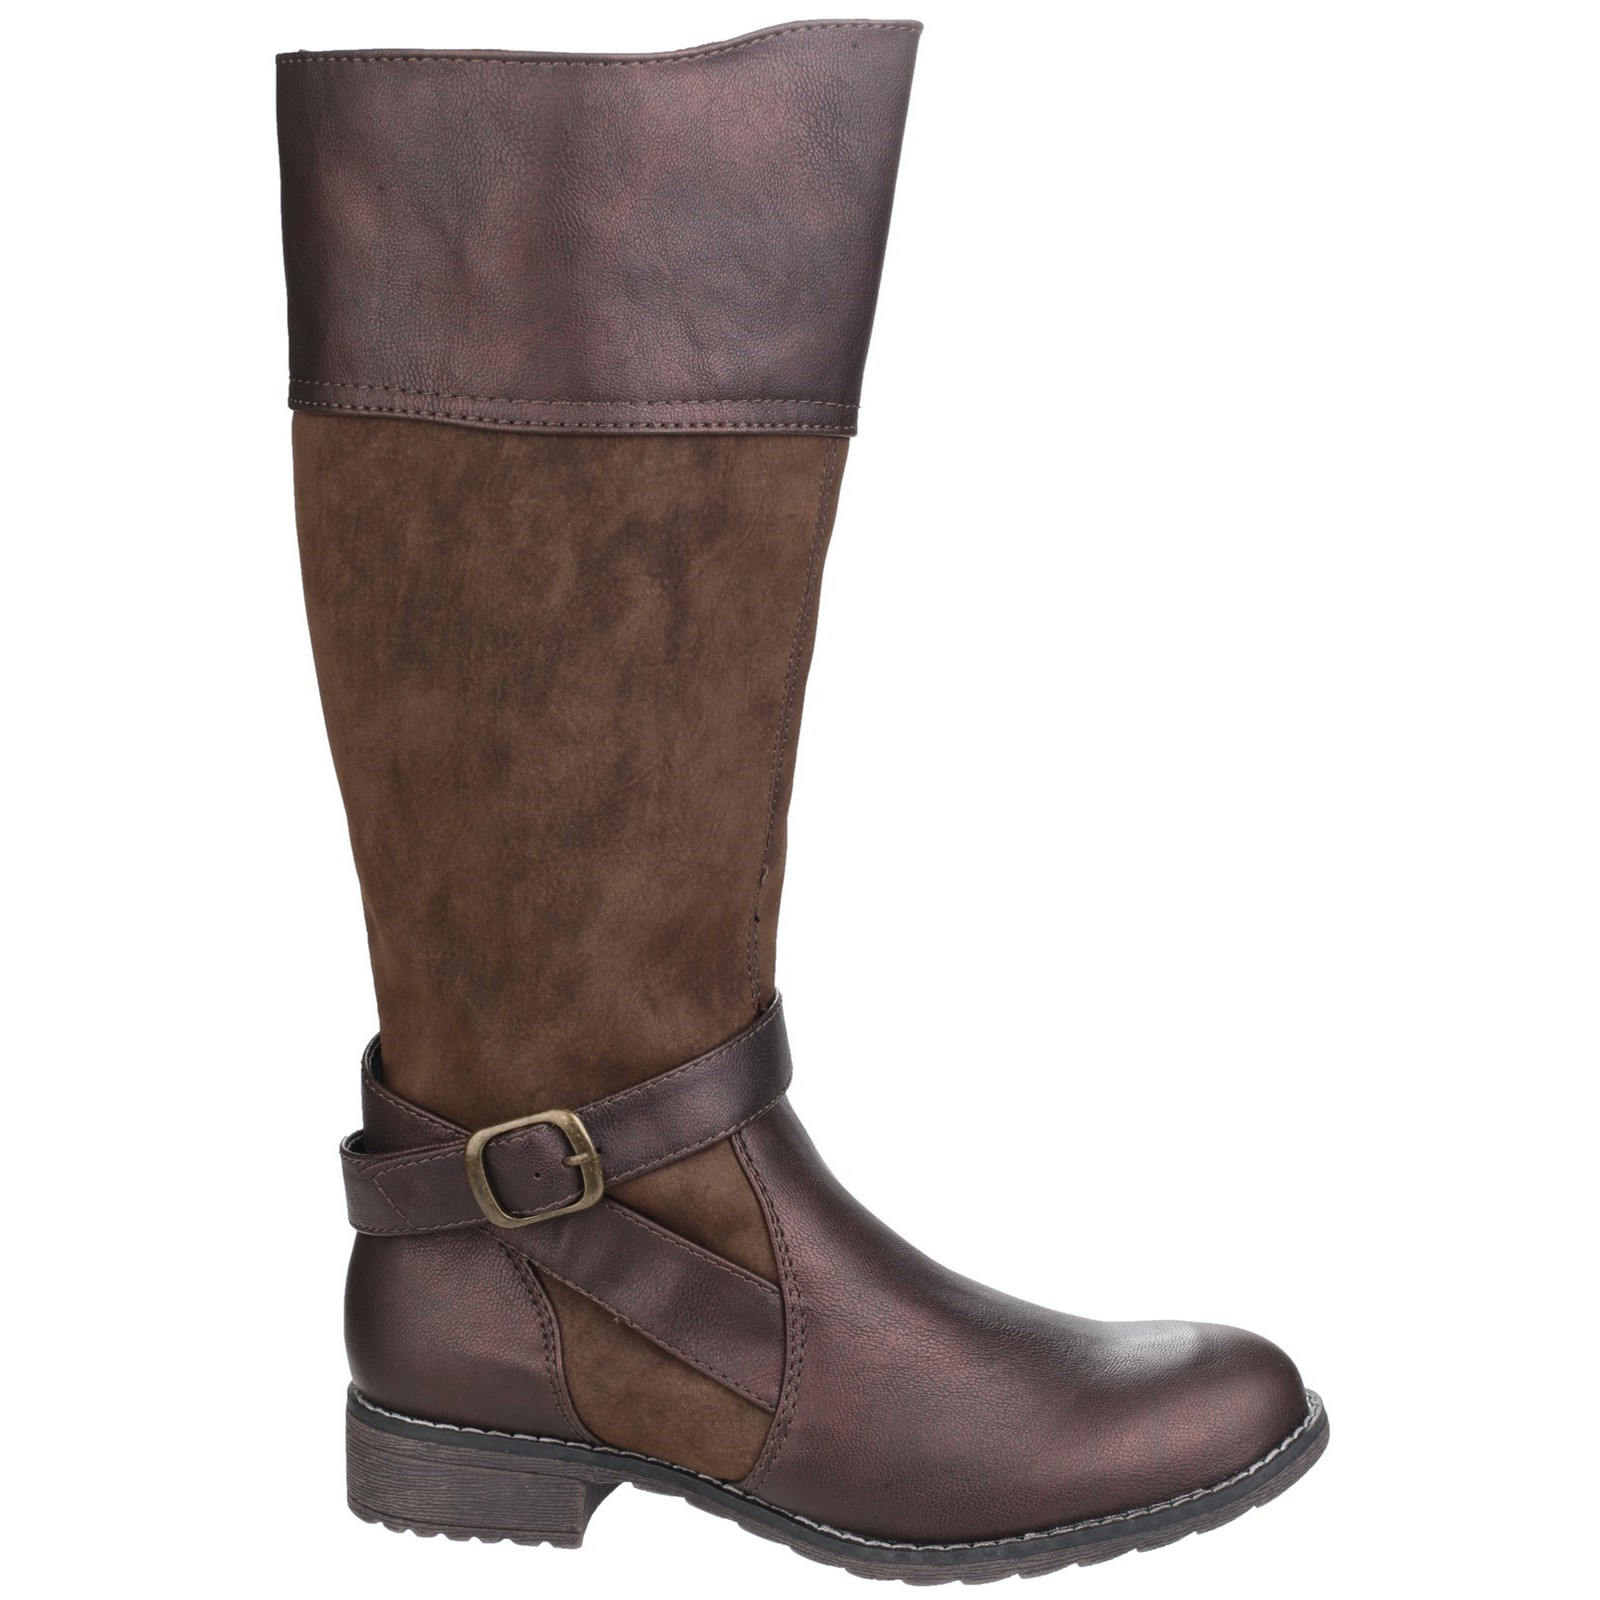 Eu Taglia Womens Uk 38 Up Marrone Garbo Boot Zip Divaz 5038600436177 5 aqnpzwY6p